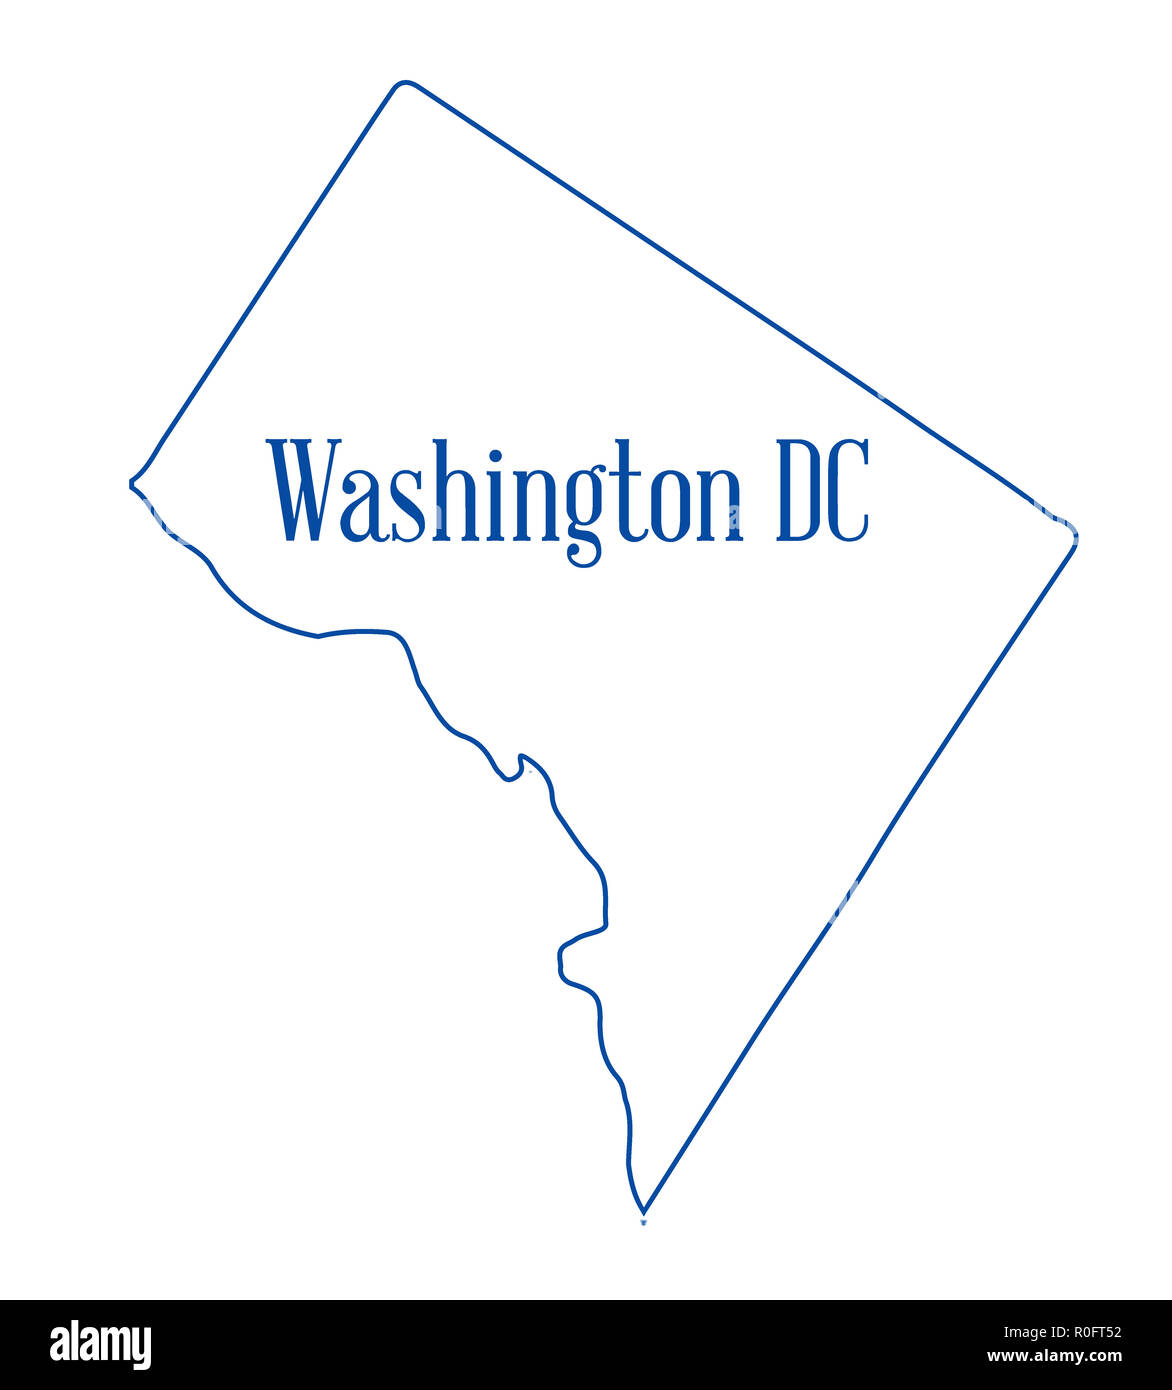 Washington Dc Map Outline Outline map of the state of Washington DC over a white background